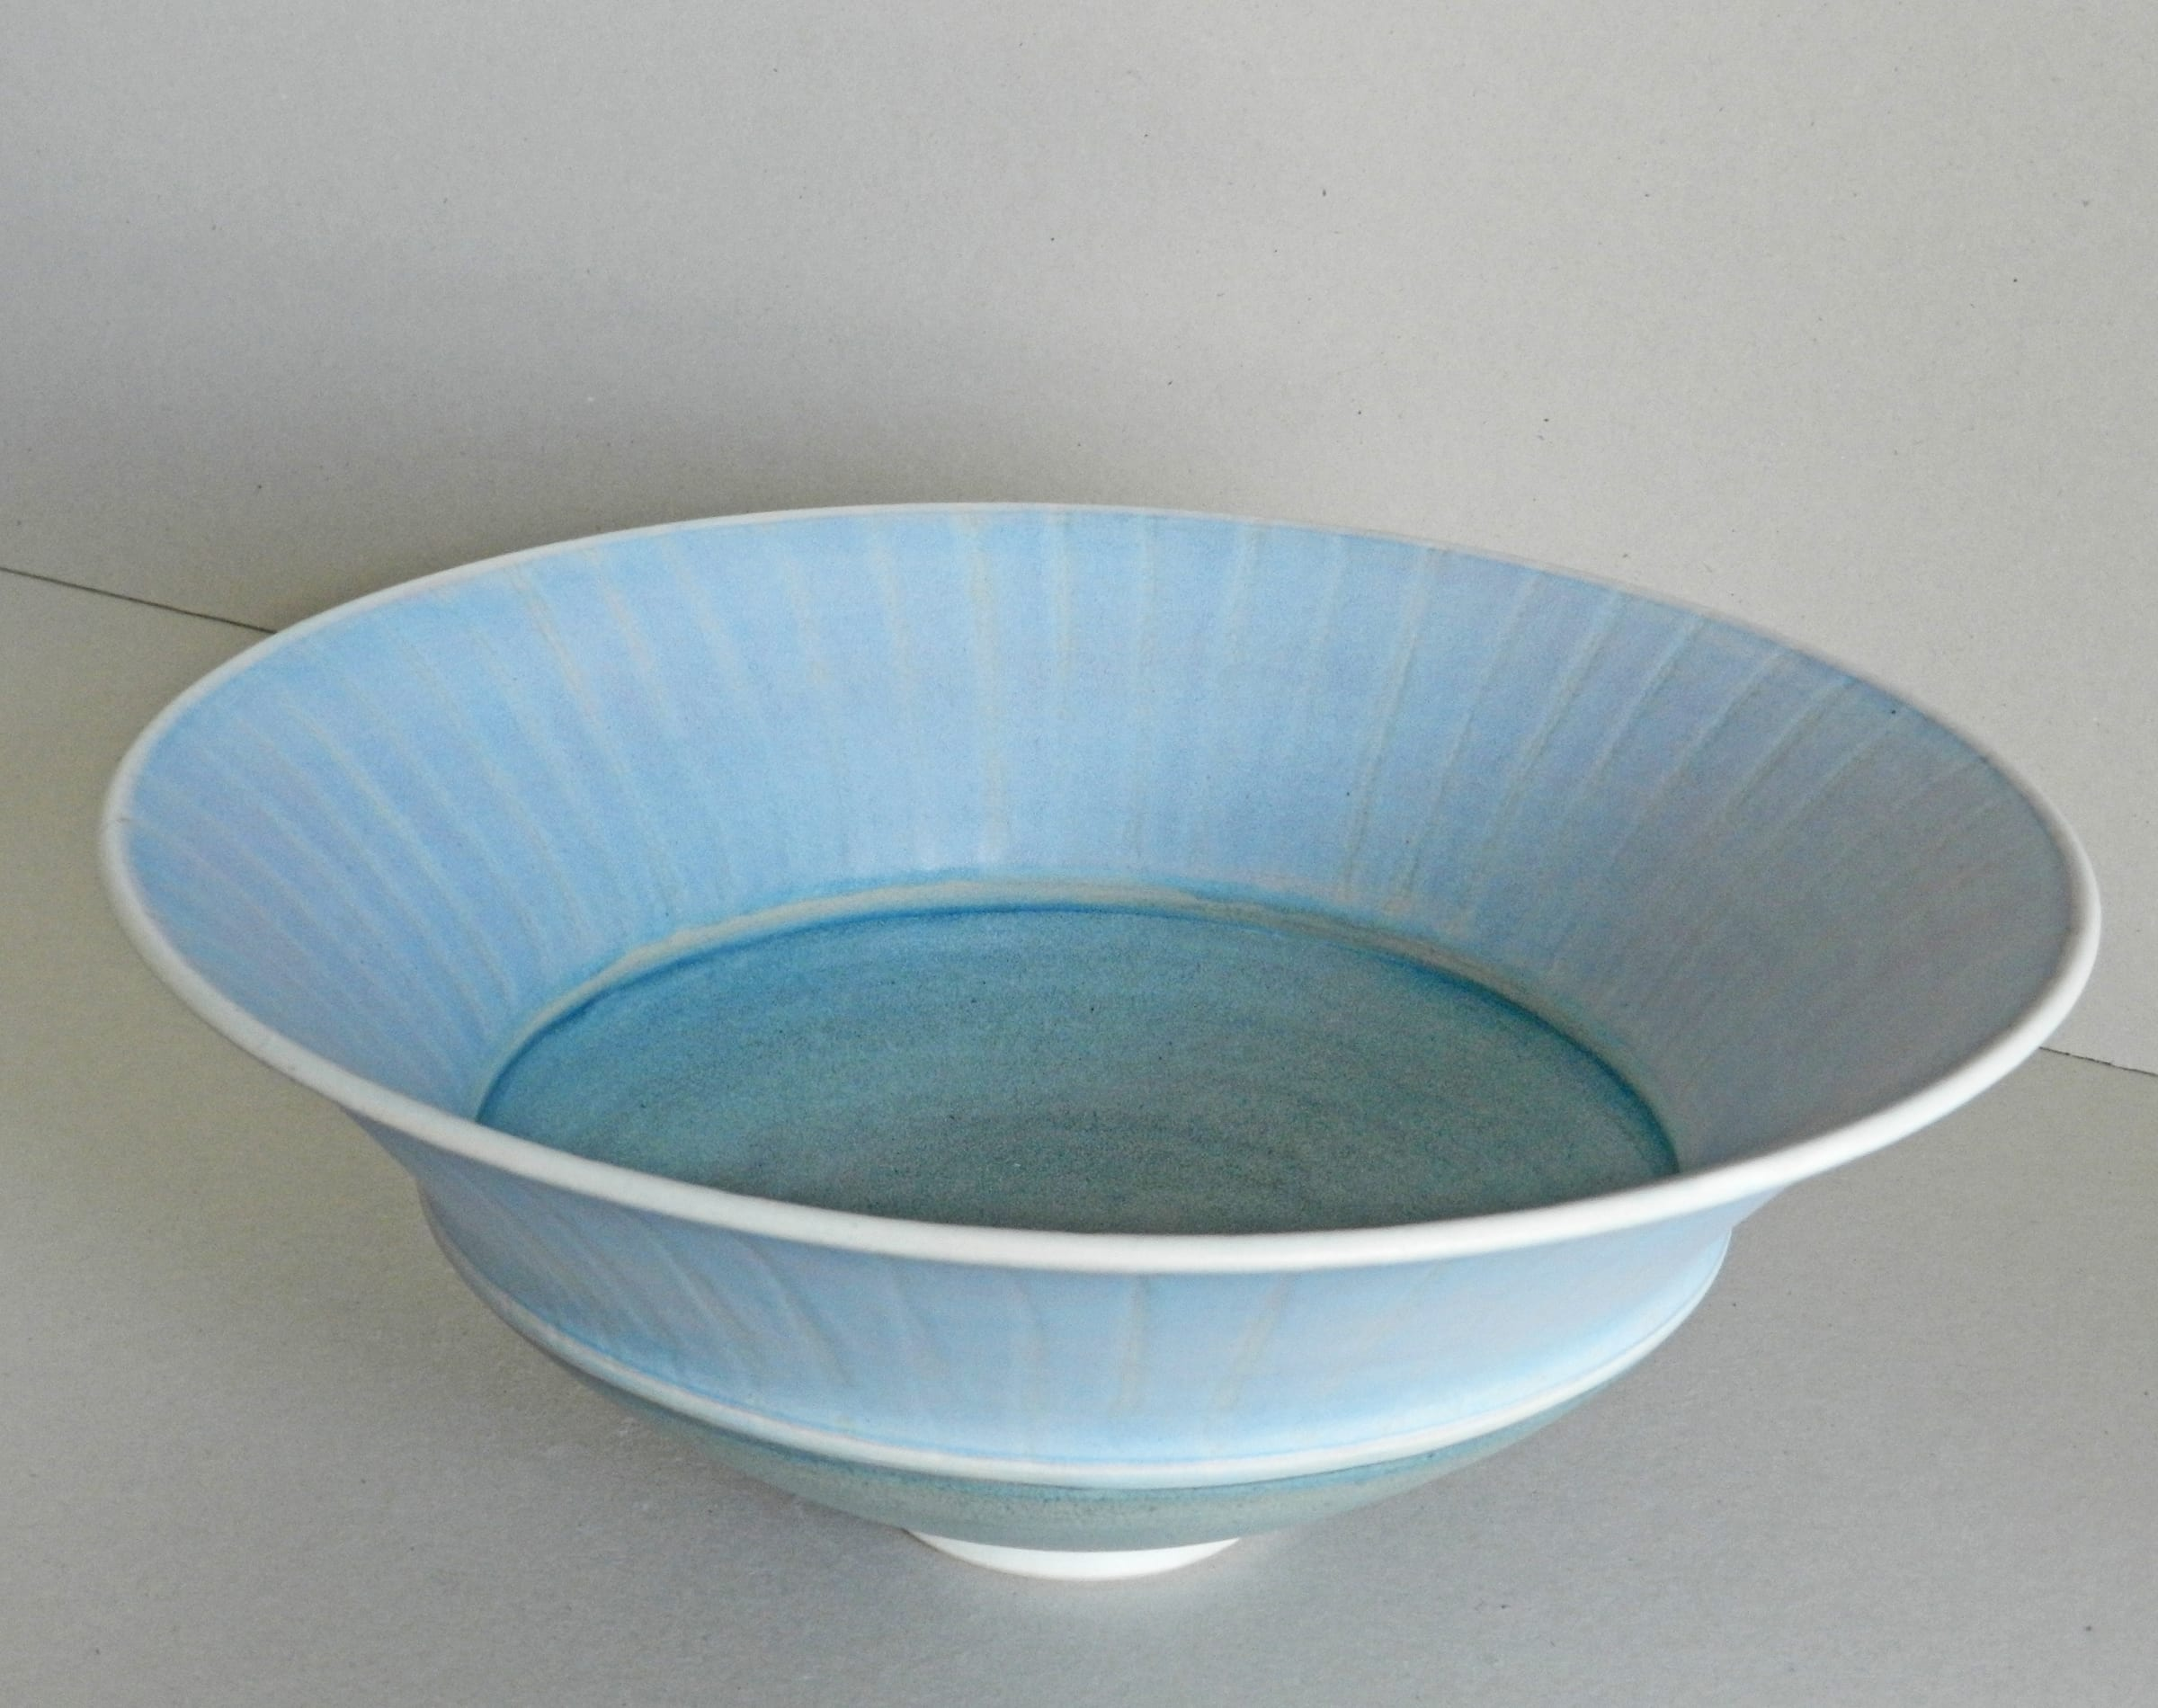 """<span class=""""link fancybox-details-link""""><a href=""""/artists/243-christine-feiler/works/6870-christine-feiler-large-double-rim-bowl-2018/"""">View Detail Page</a></span><div class=""""artist""""><strong>Christine Feiler</strong></div> b. 1948 <div class=""""title""""><em>Large double rim bowl</em>, 2018</div> <div class=""""signed_and_dated"""">Ceramicist mark on base</div> <div class=""""medium"""">Stoneware with enamels</div><div class=""""price"""">£385.00</div><div class=""""copyright_line"""">Copyright The Artist</div>"""